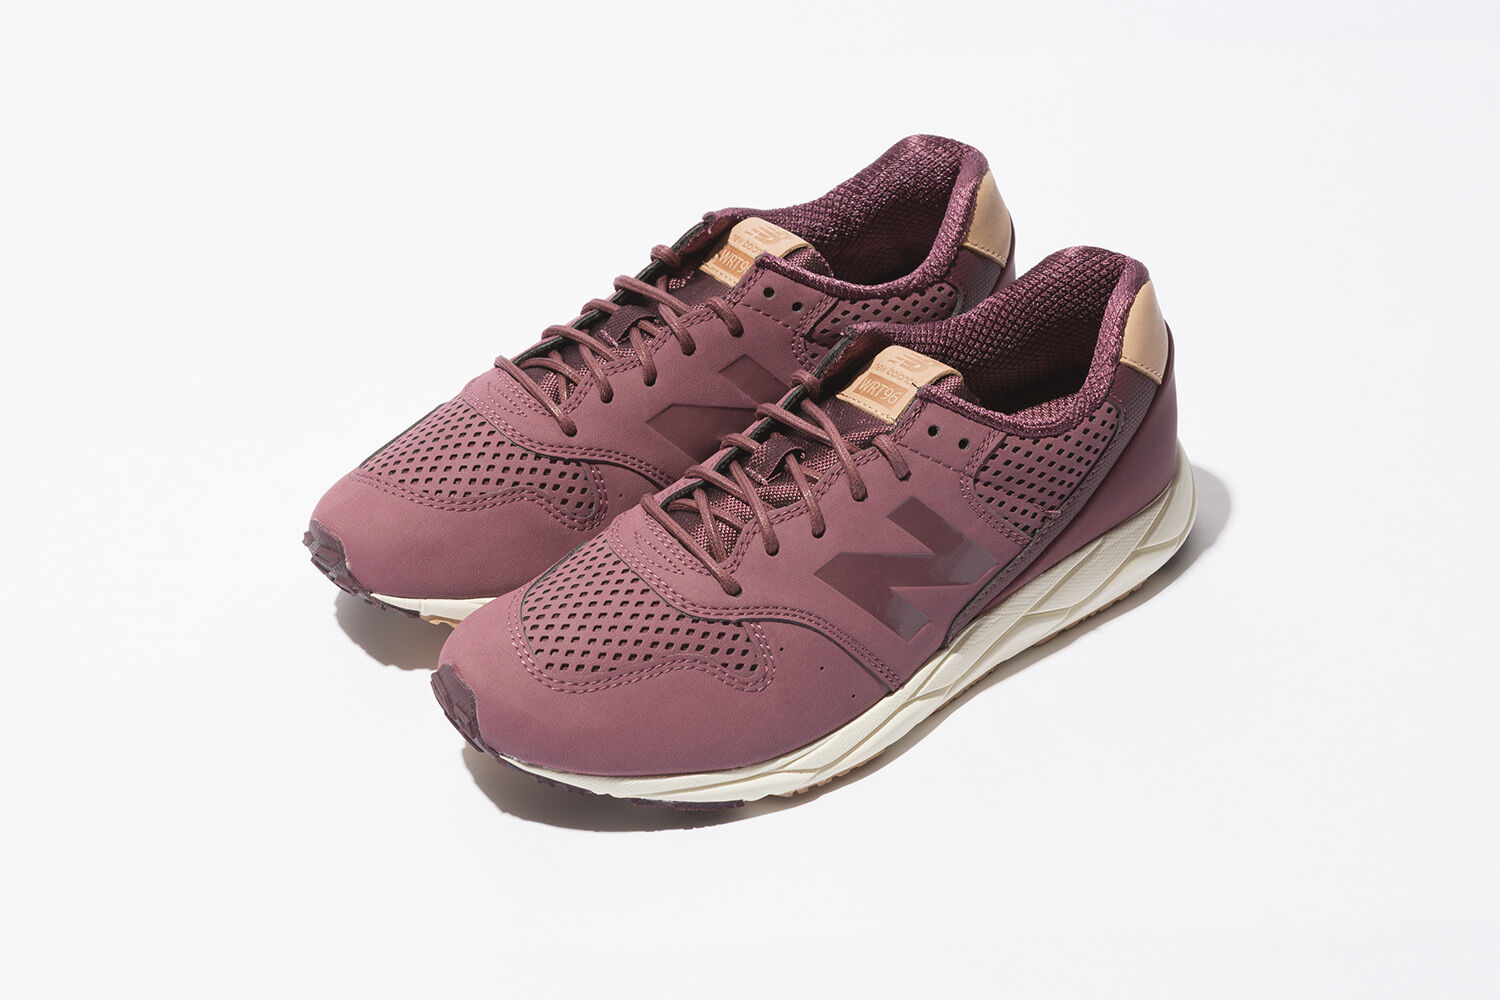 NEW BALANCE WOMEN CLASSICS WRT96TNC BURGUNDY RETRO Lifestyles Sneakers 5 - 9